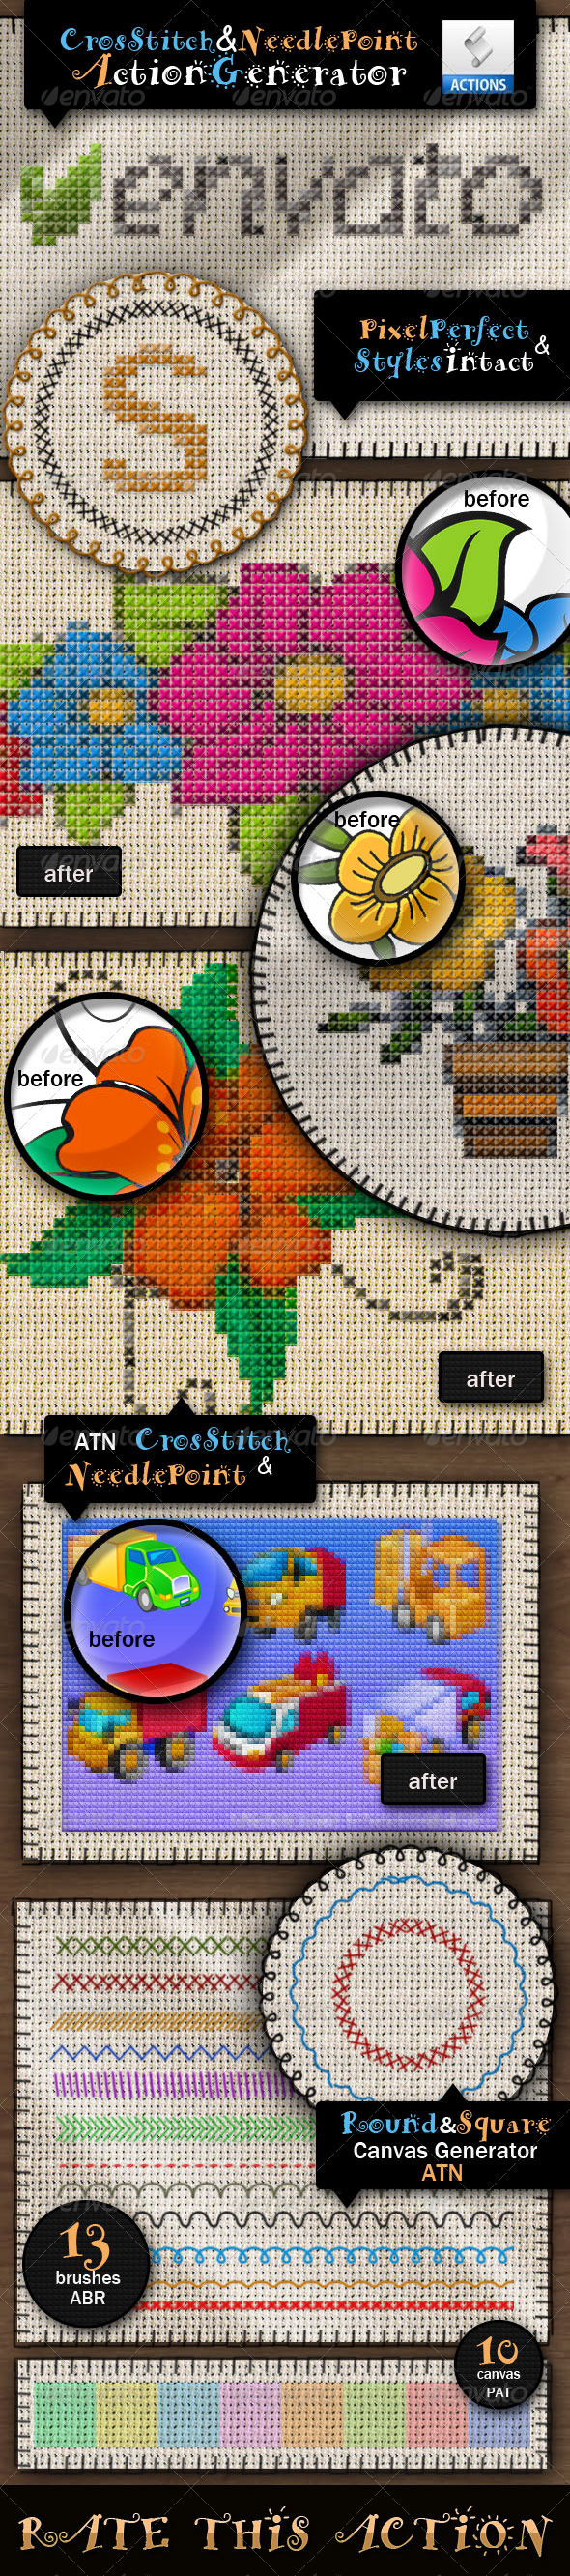 GraphicRiver Cross Stitch and Needlepoint Action 3264823